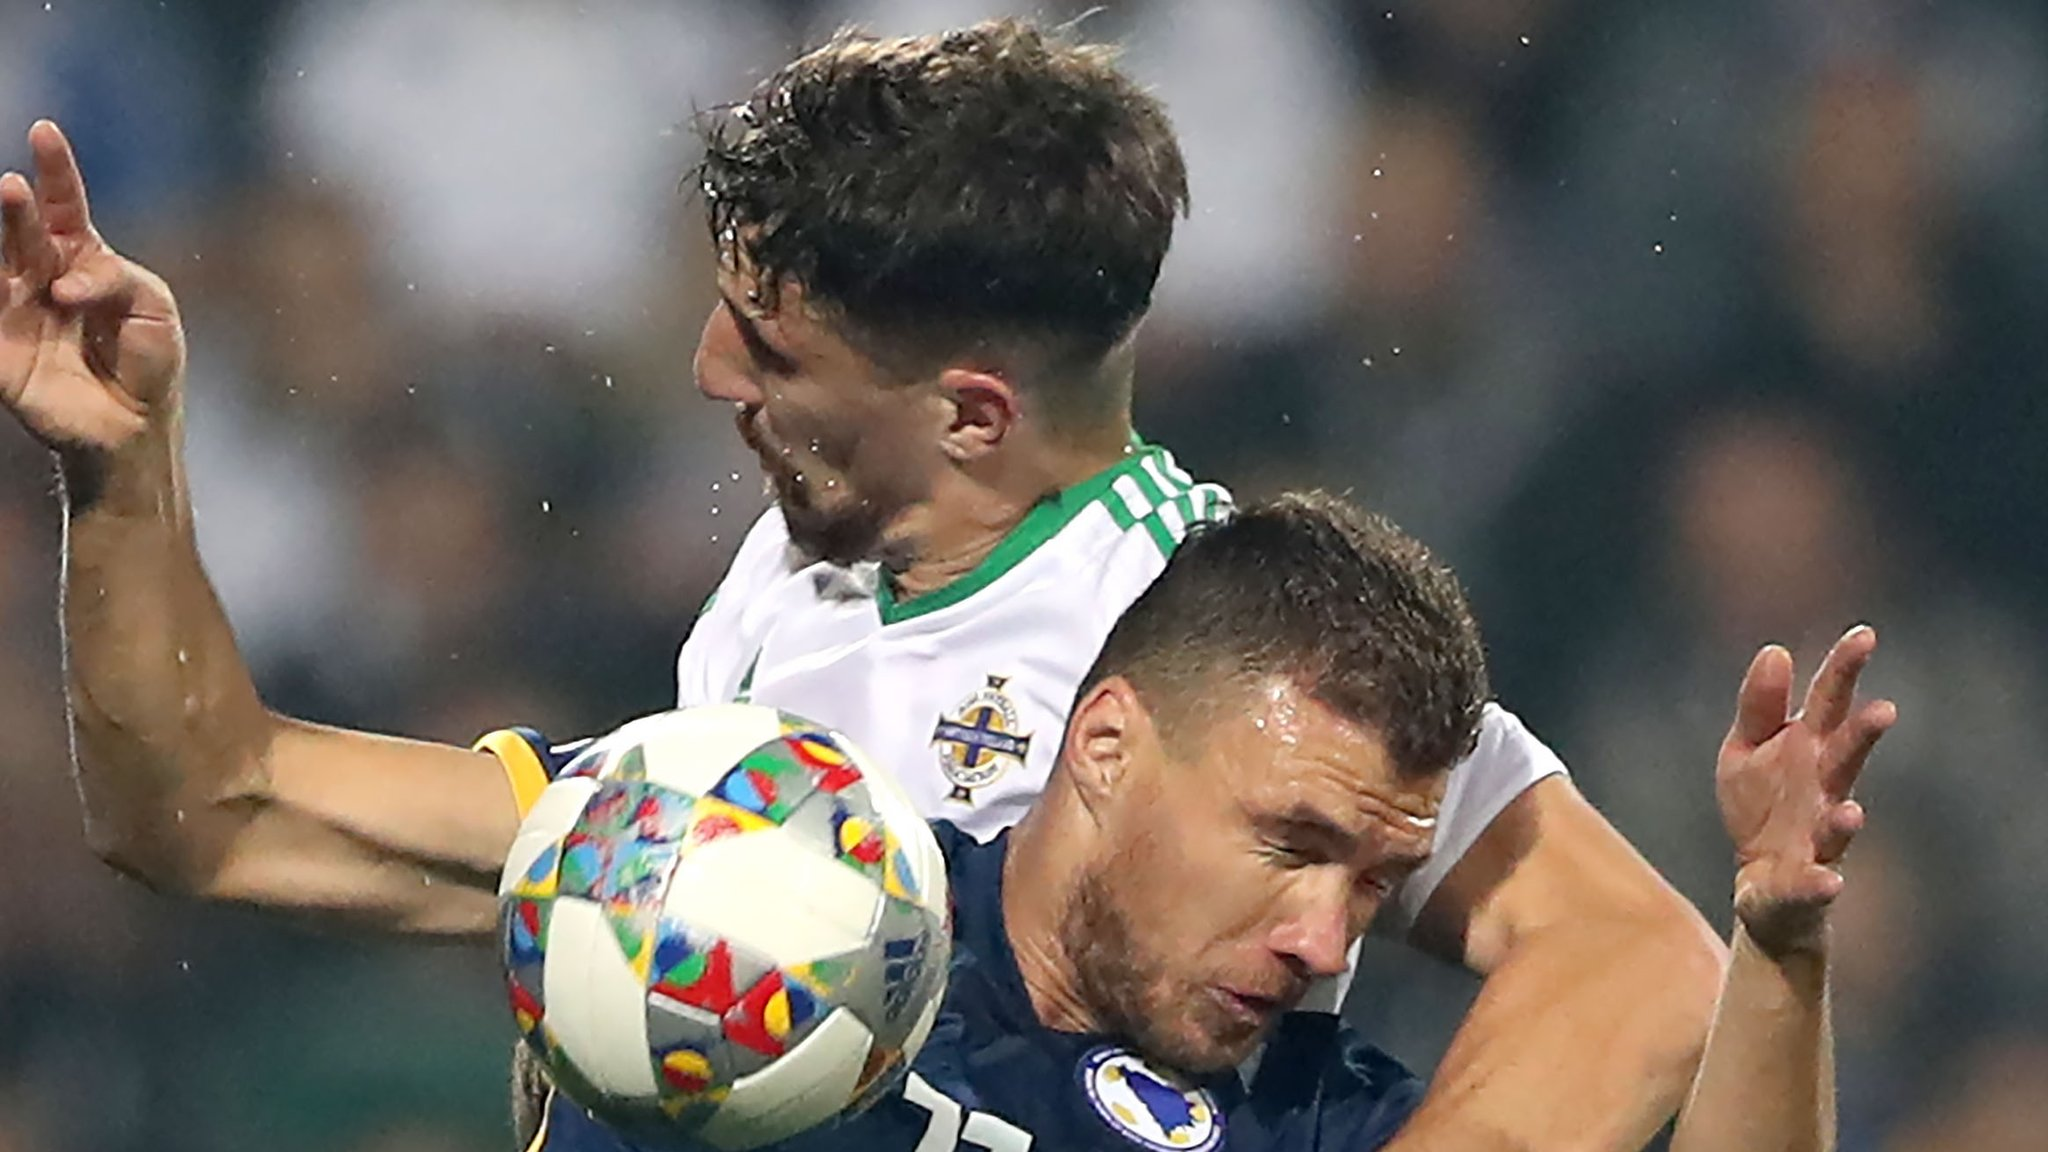 Dzeko double sends Northern Ireland to third straight Nations League defeat